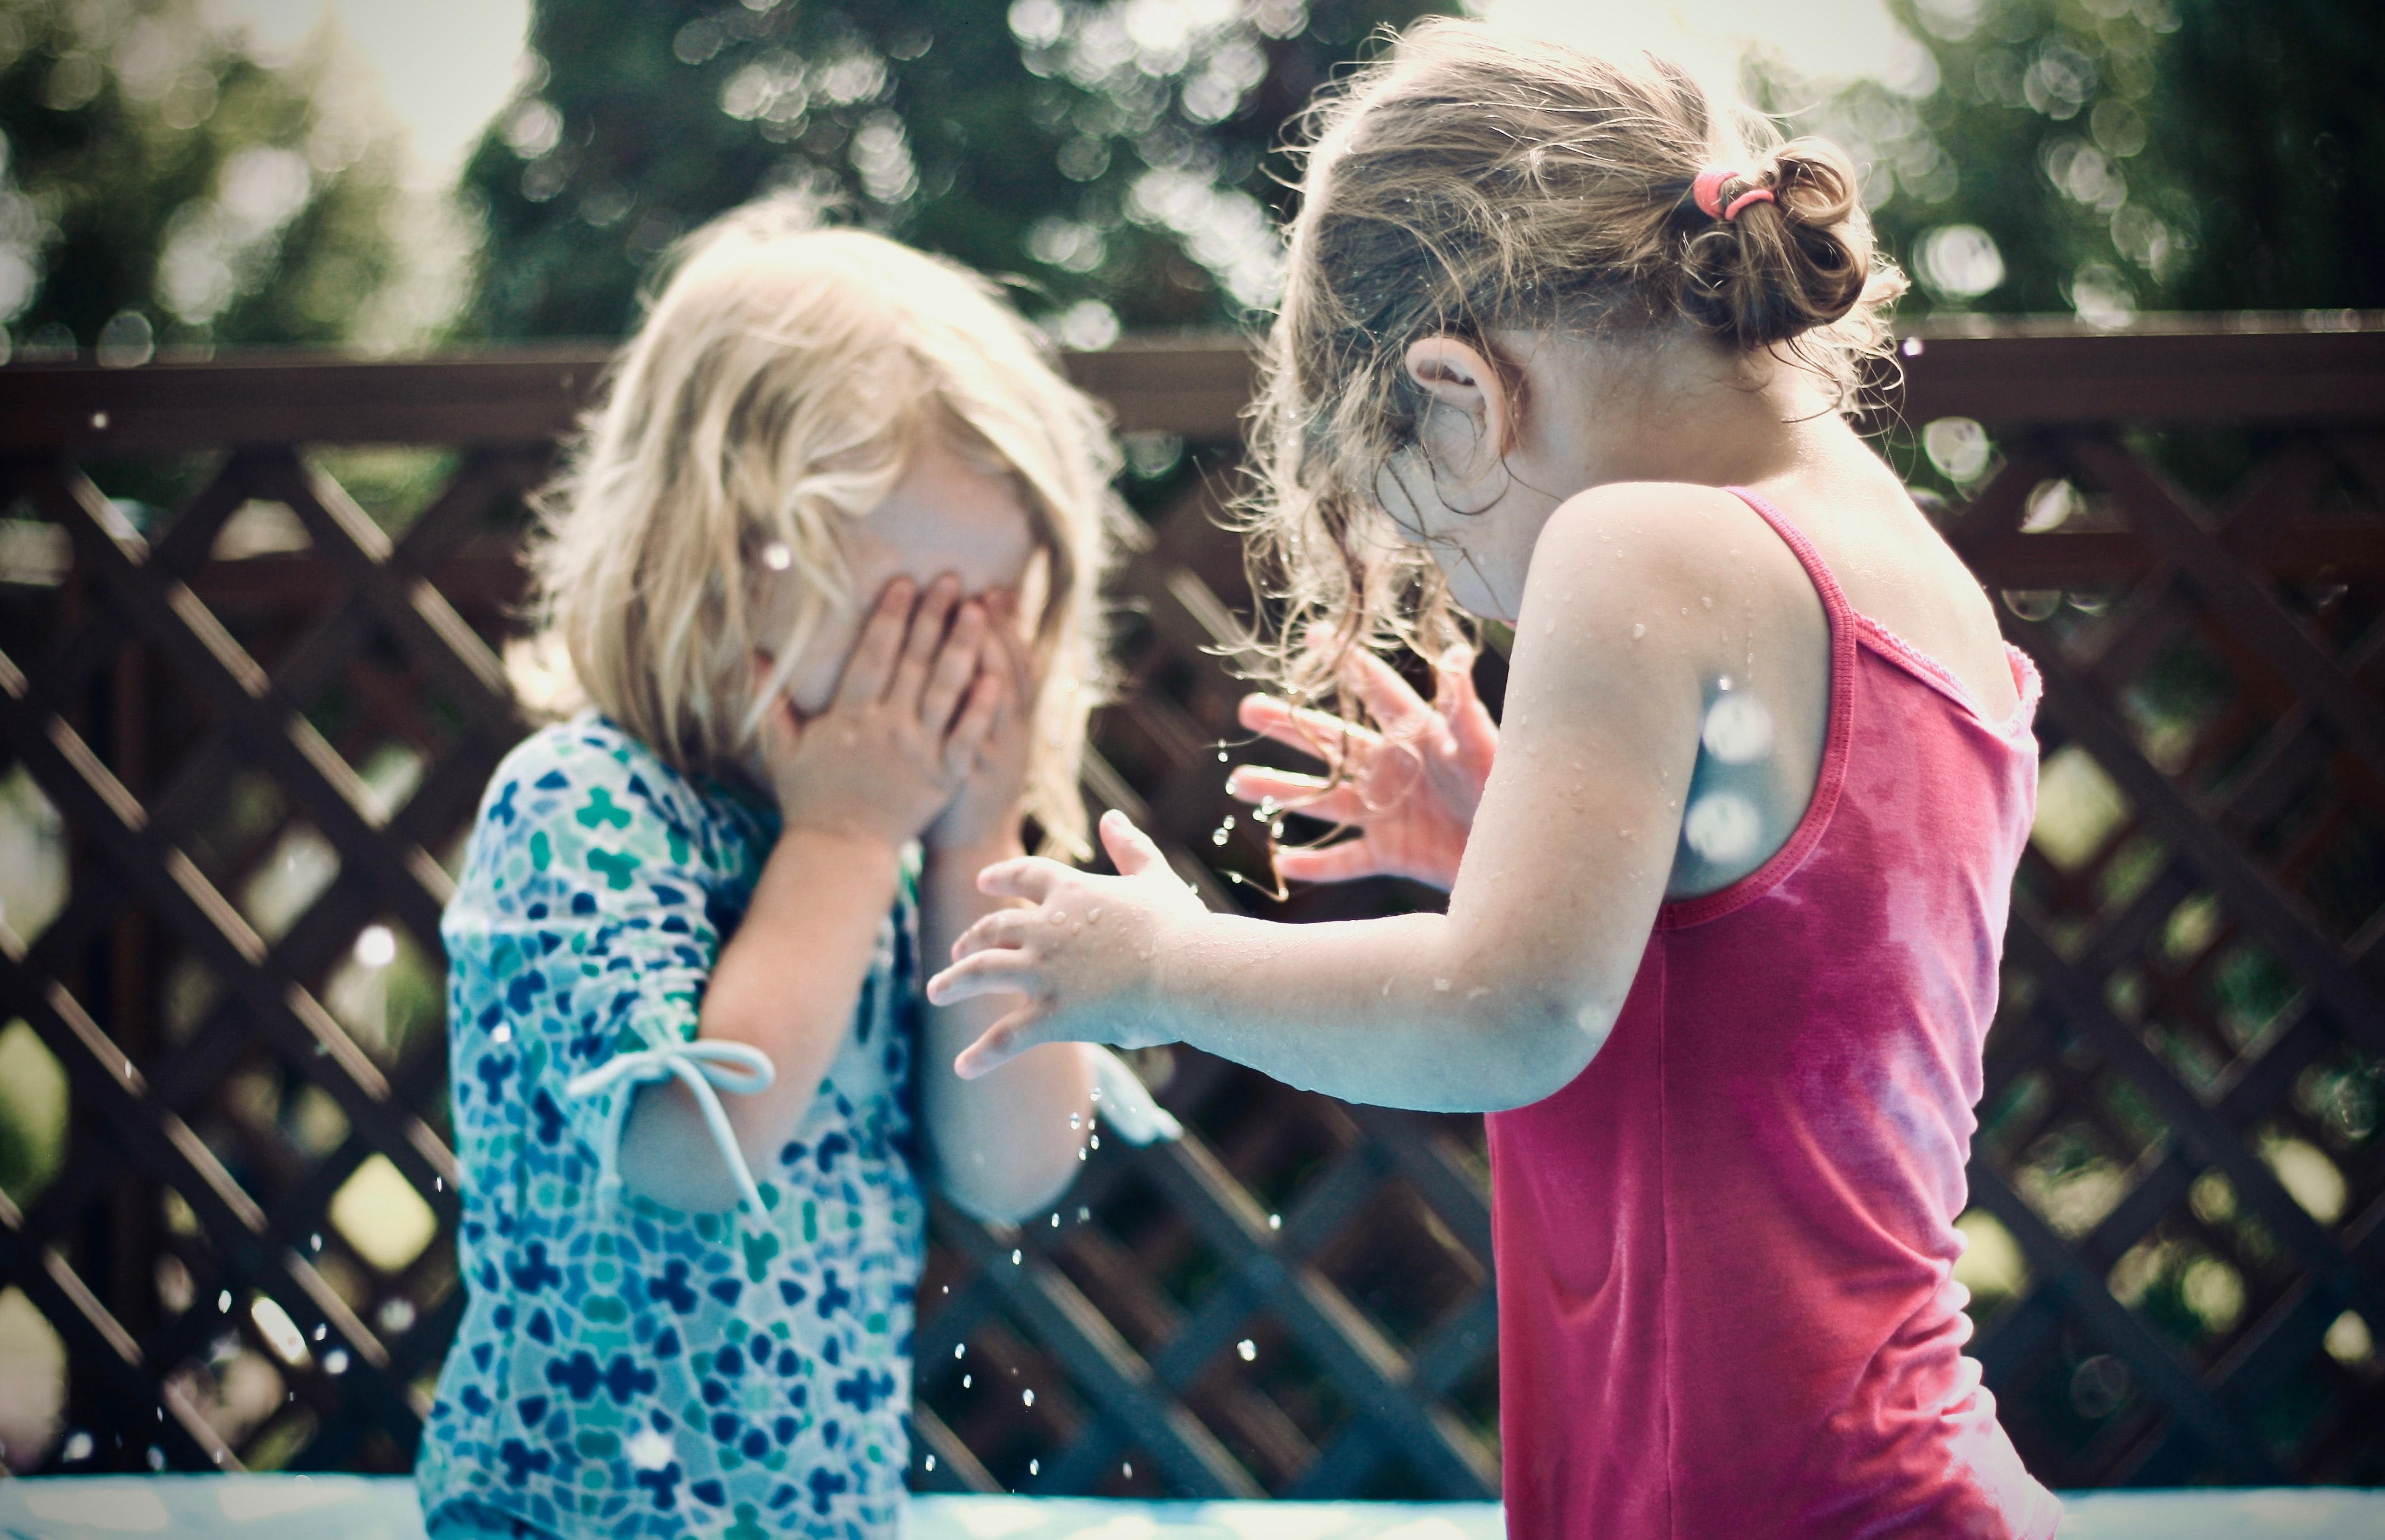 two children playing water during daytime shallow focus photography